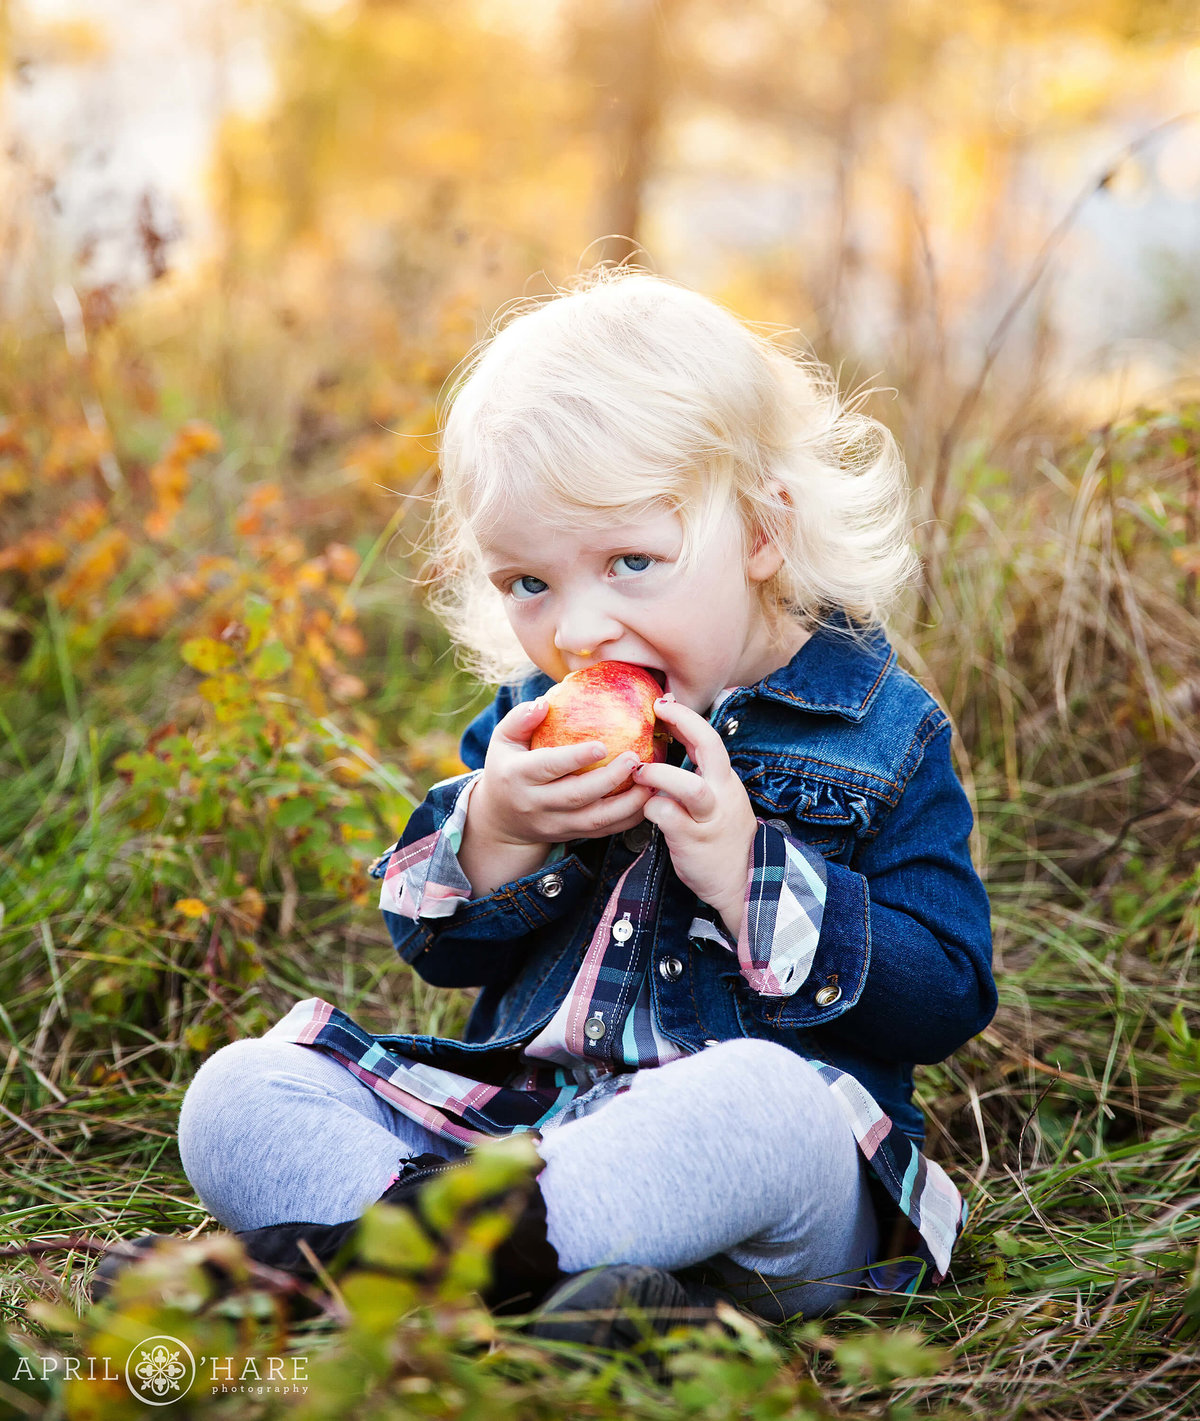 Cute Children's Photography During Fall in Boulder Colorado